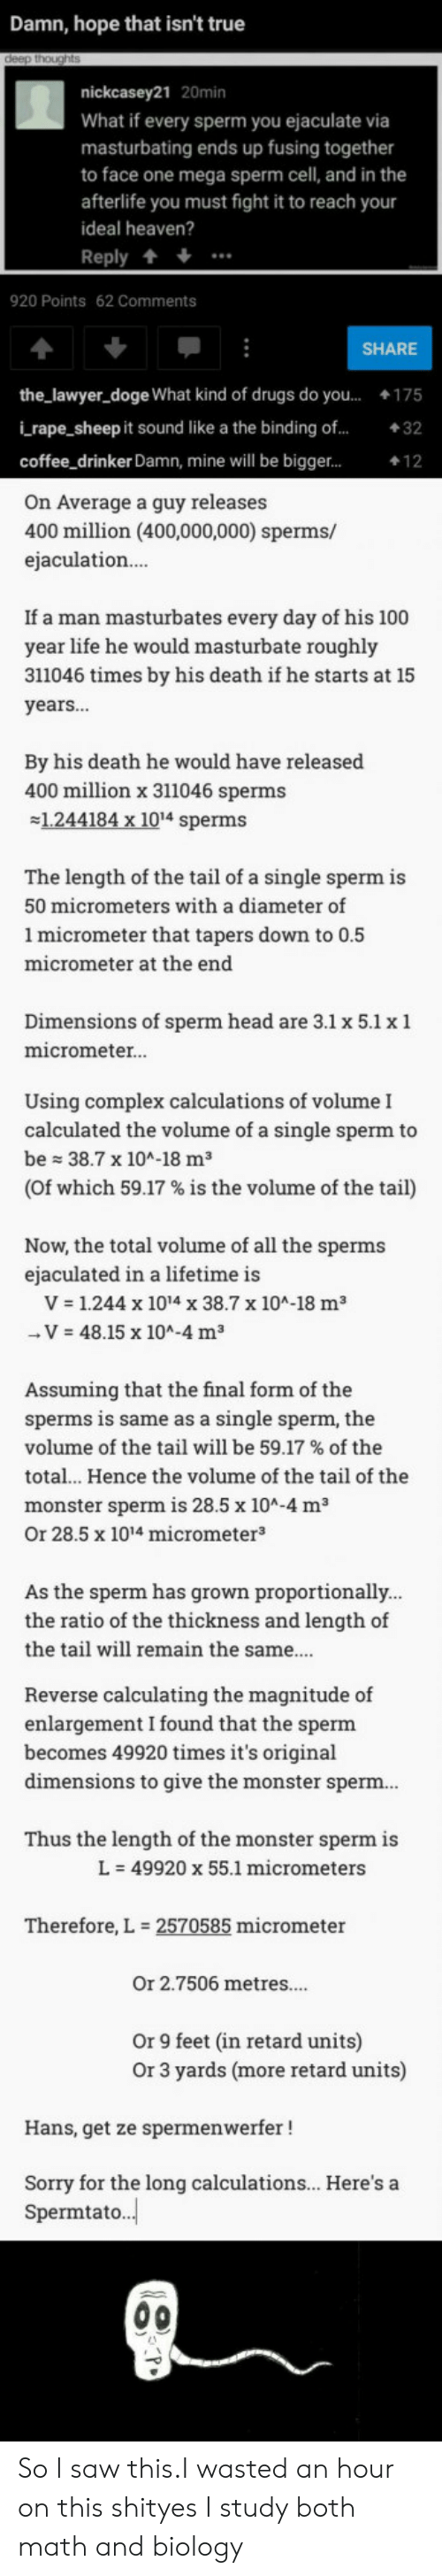 The Ratio: Damn, hope that isn't true  nickcasey21 20min  What if every sperm you ejaculate via  masturbating ends up fusing together  to face one mega sperm cell, and in the  afterlife you must fight it to reach your  ideal heaven?  Reply +  920 Points 62 Comments  SHARE  the_lawyer_doge What kind of drugs do you...175  i rape_sheep it sound like a the binding of...32  coffee drinker Damn, mine will be bigger...  On Average a guy releases  400 million (400,000,000) sperms/  ejaculation  If a man masturbates every day of his 100  year life he would masturbate roughly  311046 times by his death if he starts at 15  years...  By his death he would have released  400 million x 311046 sperms  1.244184 x 1014 sperms  The length of the tail of a single sperm is  50 micrometers with a diameter of  1 micrometer that tapers down to 0.5  micrometer at the end  Dimensions of sperm head are 3.1 x 5.1 x 1  micrometer.  Using complex calculations of volume I  calculated the volume of a single sperm to  be 38.7 x 104-18 m3  (of which 59.17 % is the volume of the tail)  Now, the total volume of all the sperms  ejaculated in a lifetime is  V 1.244 x 1014 x 38.7 x 10A-18 m3  V 48.15 x 104-4 m3  Assuming that the final form of the  sperms is same as a single sperm, the  volume of the tail will be 59.17 % of the  total.. Hence the volume of the tail of the  monster sperm is 28.5 x 10A-4 m3  Or 28.5 x 1014 micrometer3  As the sperm has grown proportionally  the ratio of the thickness and length of  the tail will remain the same...  Reverse calculating the magnitude of  enlargement I found that the sperm  becomes 49920 times it's original  dimensions to give the monster sperm  Thus the length of the monster sperm is  L-49920 x 55.1 micrometers  Therefore, L  2570585 micrometer  Or 2.7506 metres....  Or 9 feet (in retard units)  Or 3 yards (more retard units)  Hans, get ze spermenwerfer!  Sorry for the long calculations... Here's a  Spermtato. So I saw this.I wasted an hour on this shityes